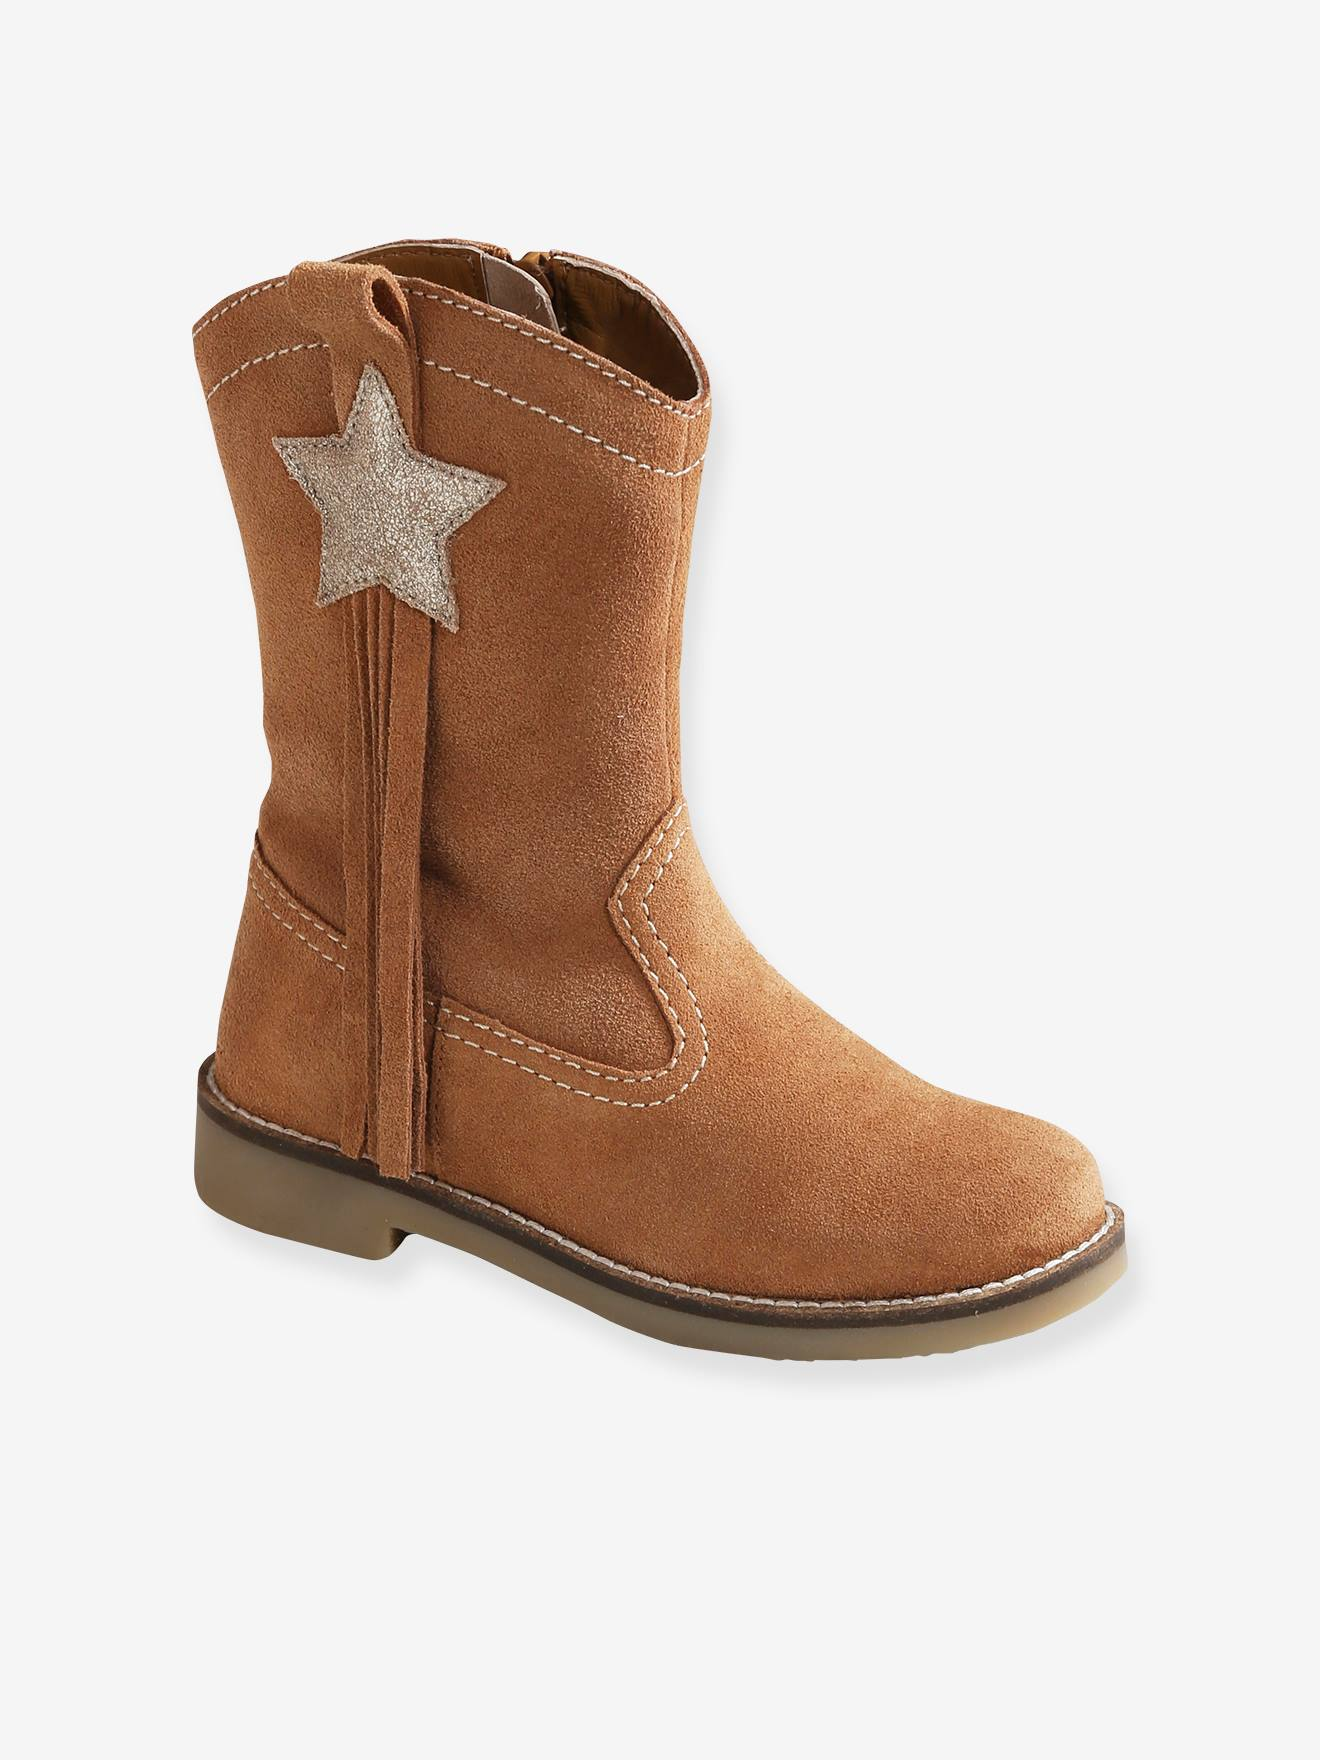 Fancy Leather Boots, for Girls - brown